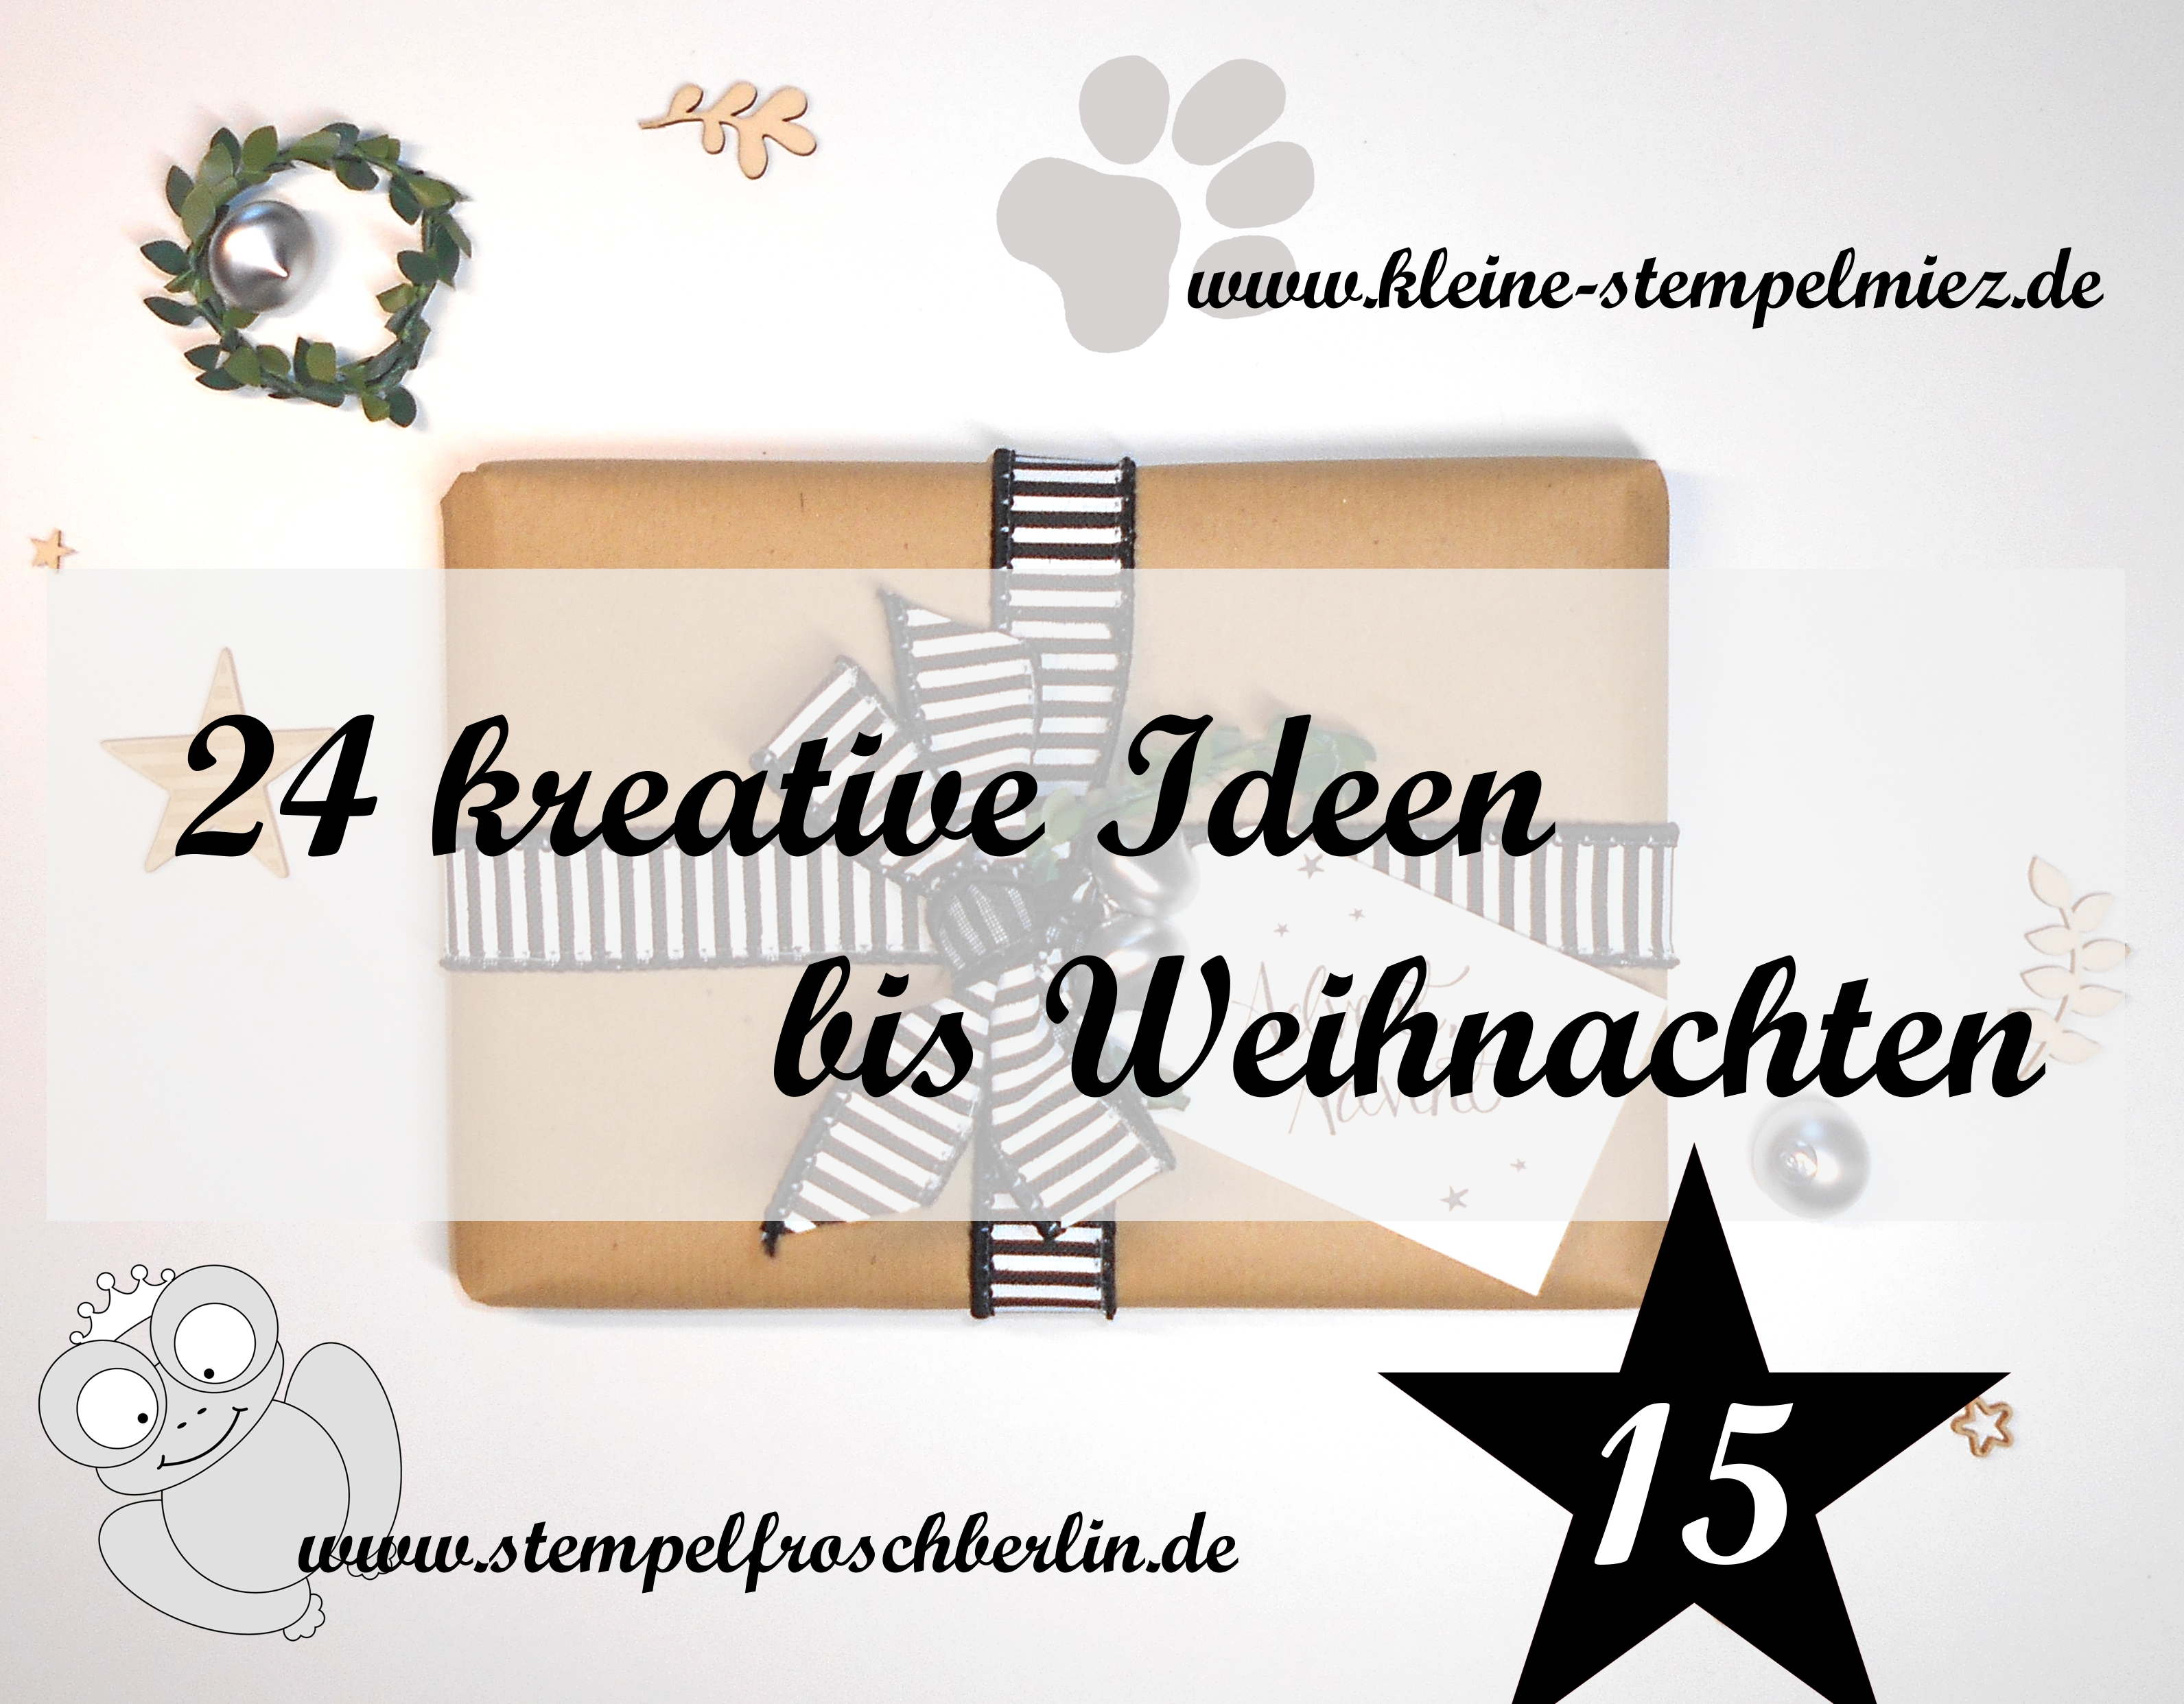 digitaler adventskalender t rchen nummer 15 kleine stempelmiez basteln aus liebe. Black Bedroom Furniture Sets. Home Design Ideas